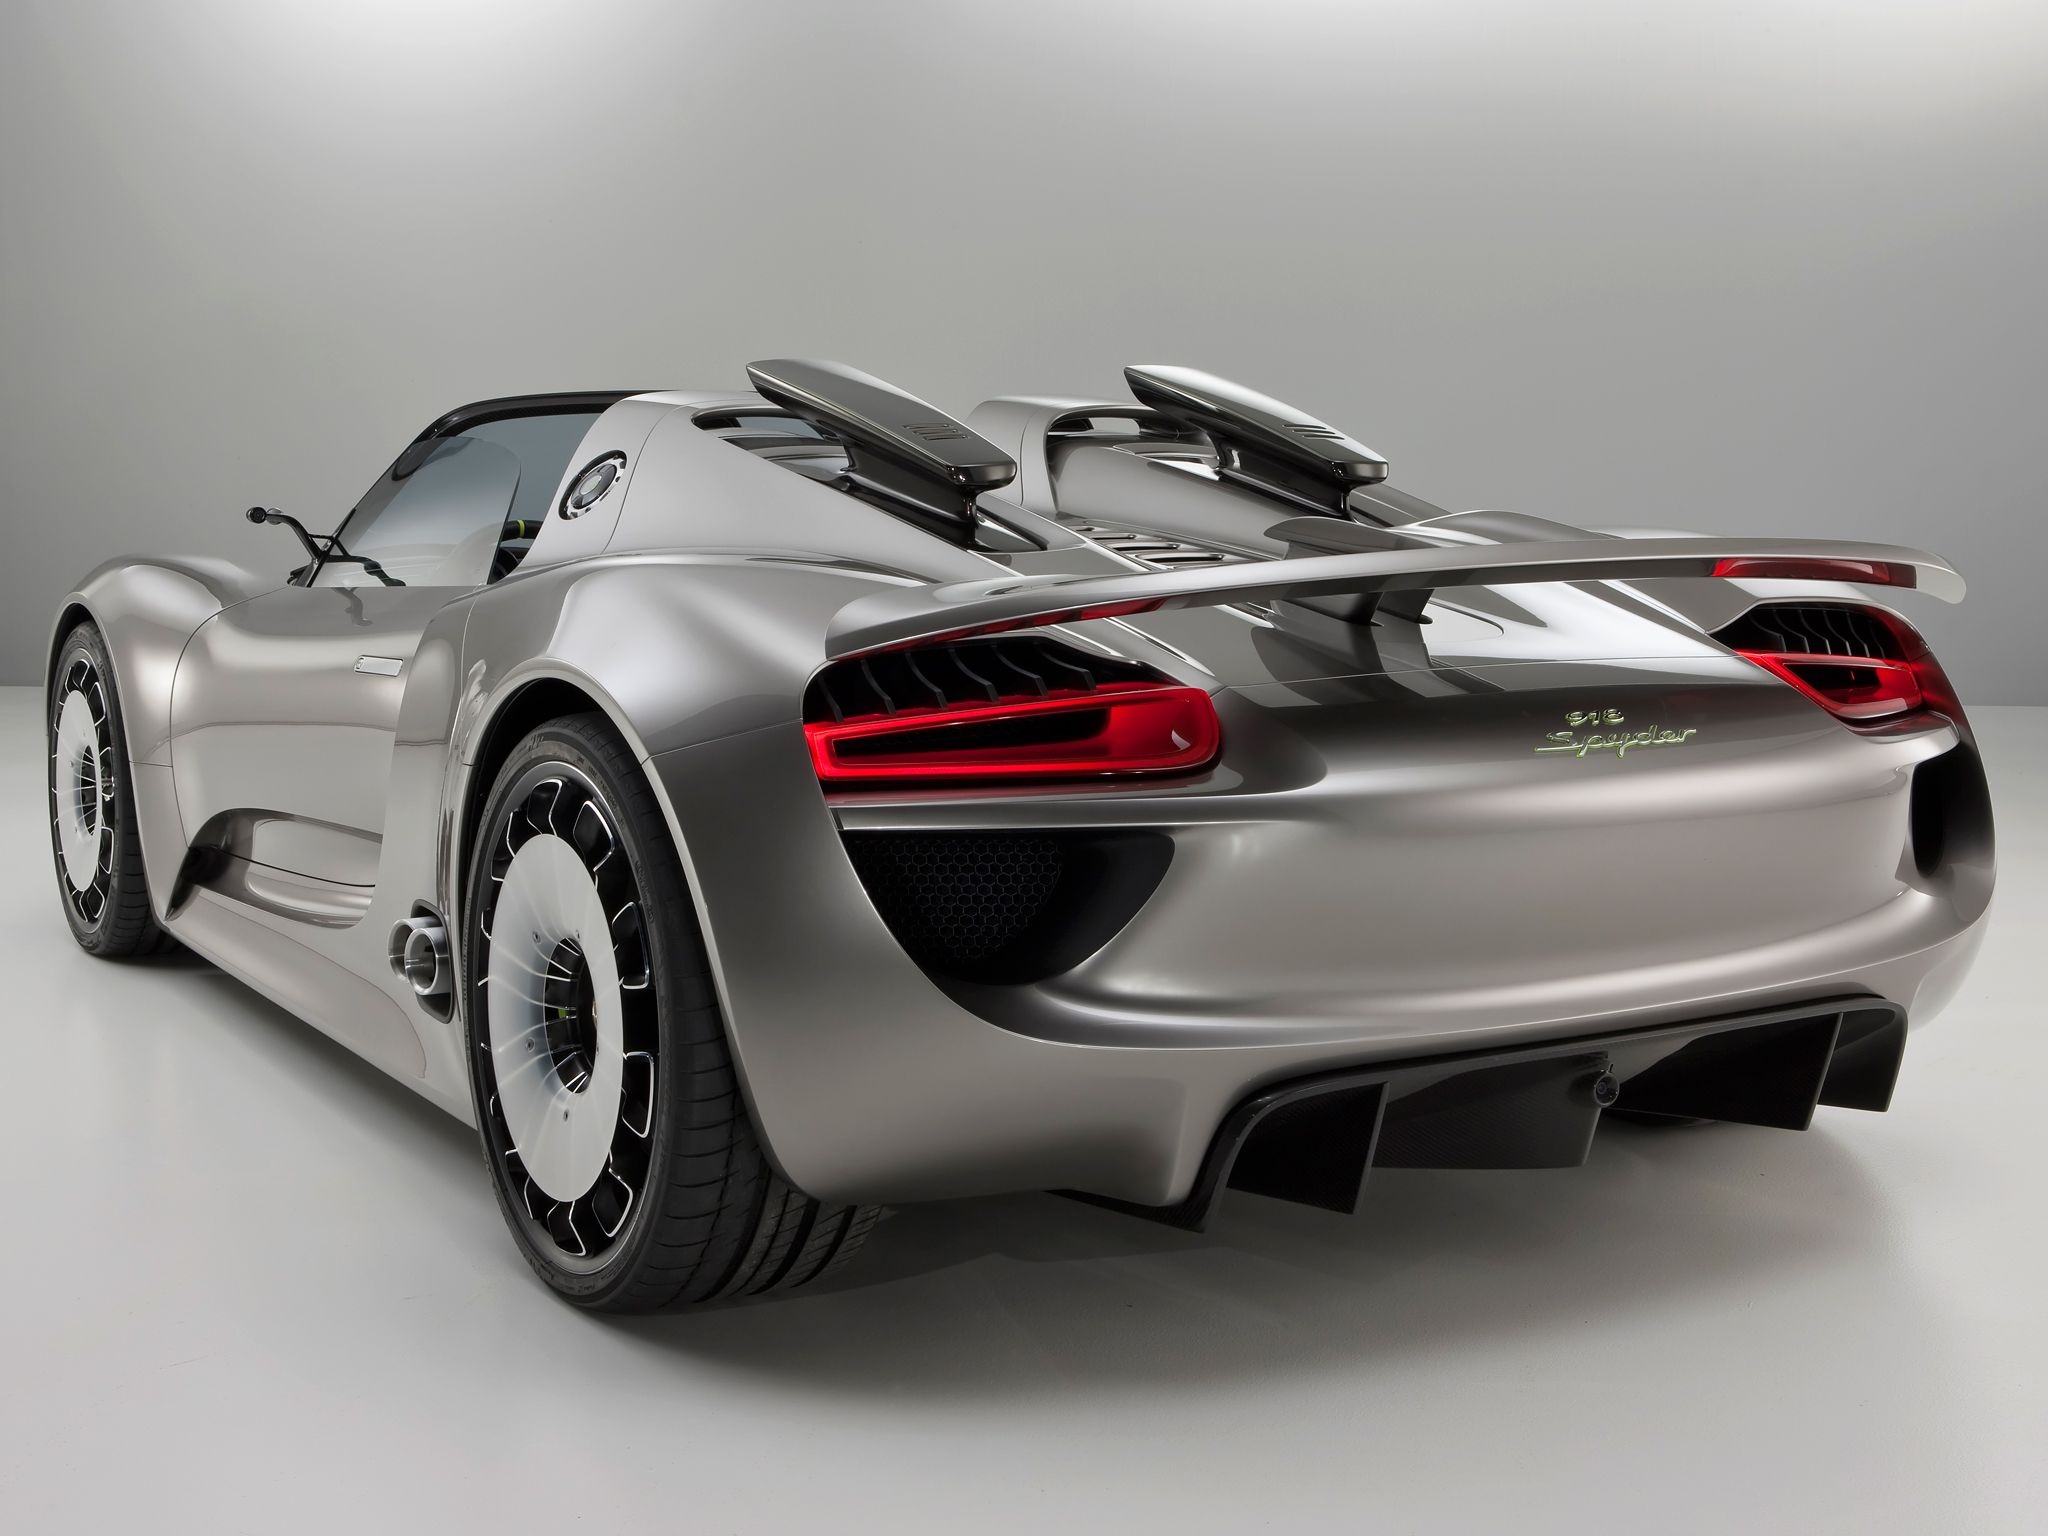 35fbae8aeb7275886cba99d16798a07a Interesting Porsche 918 Spyder Concept Mirrors Cars Trend